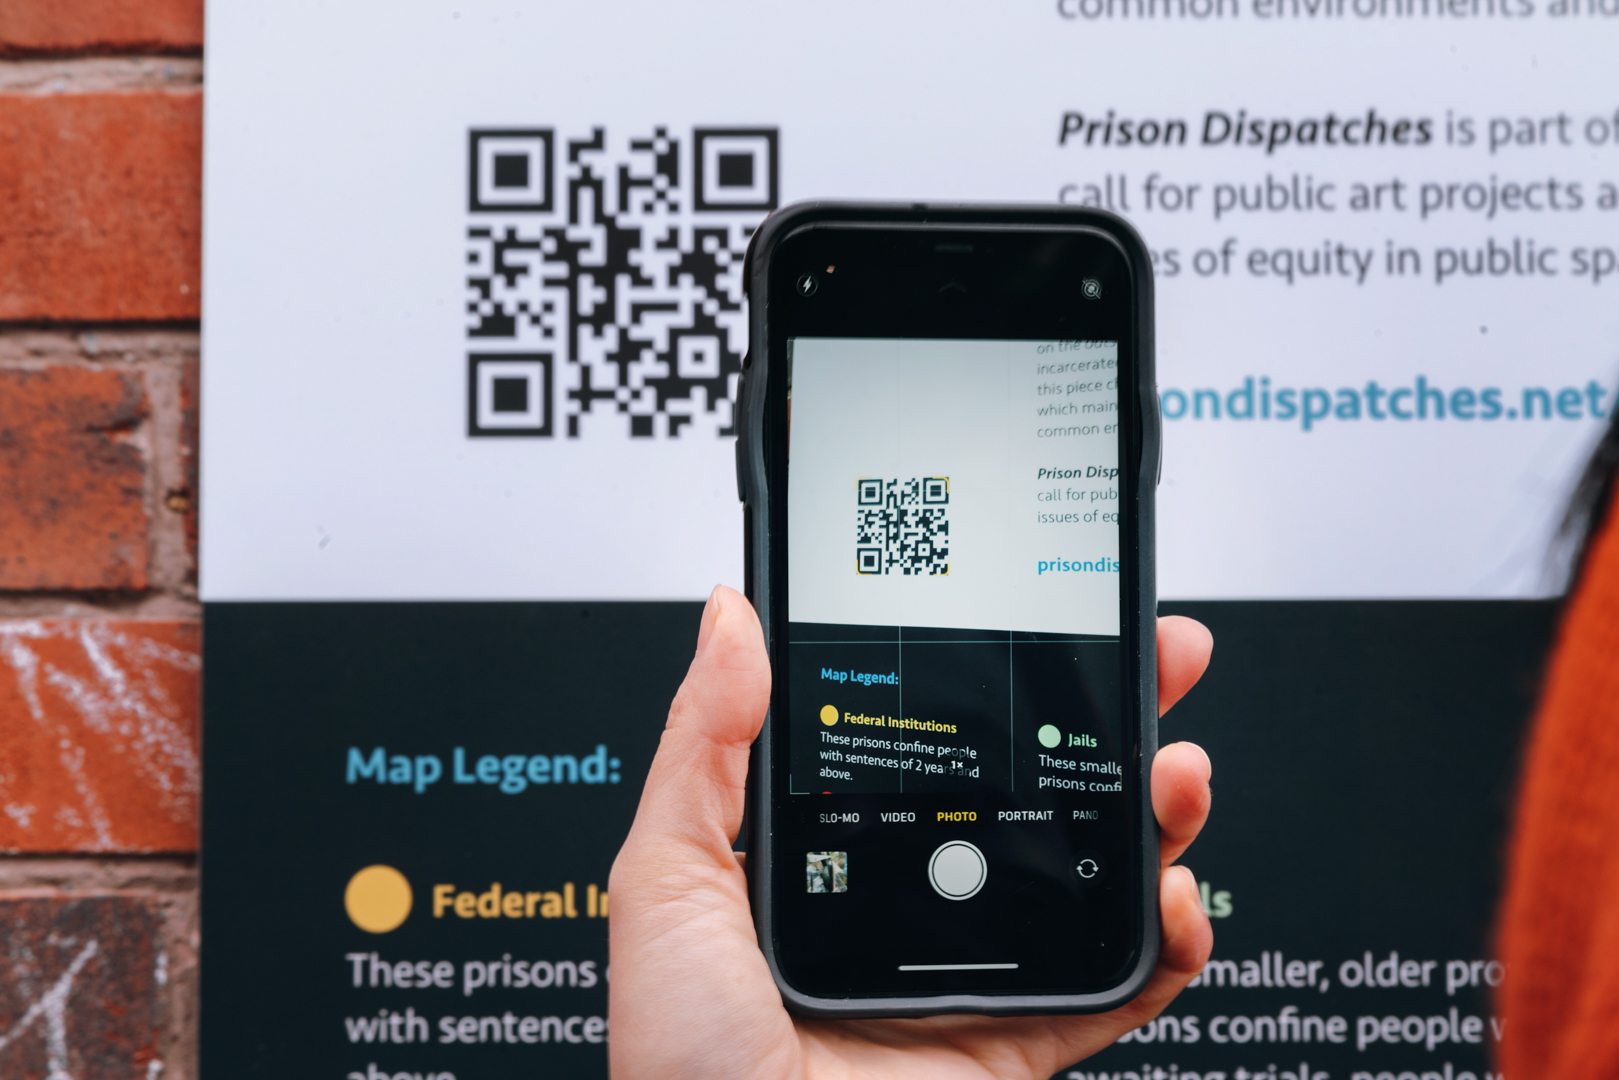 A cellphone is held in front of a qr code on a map